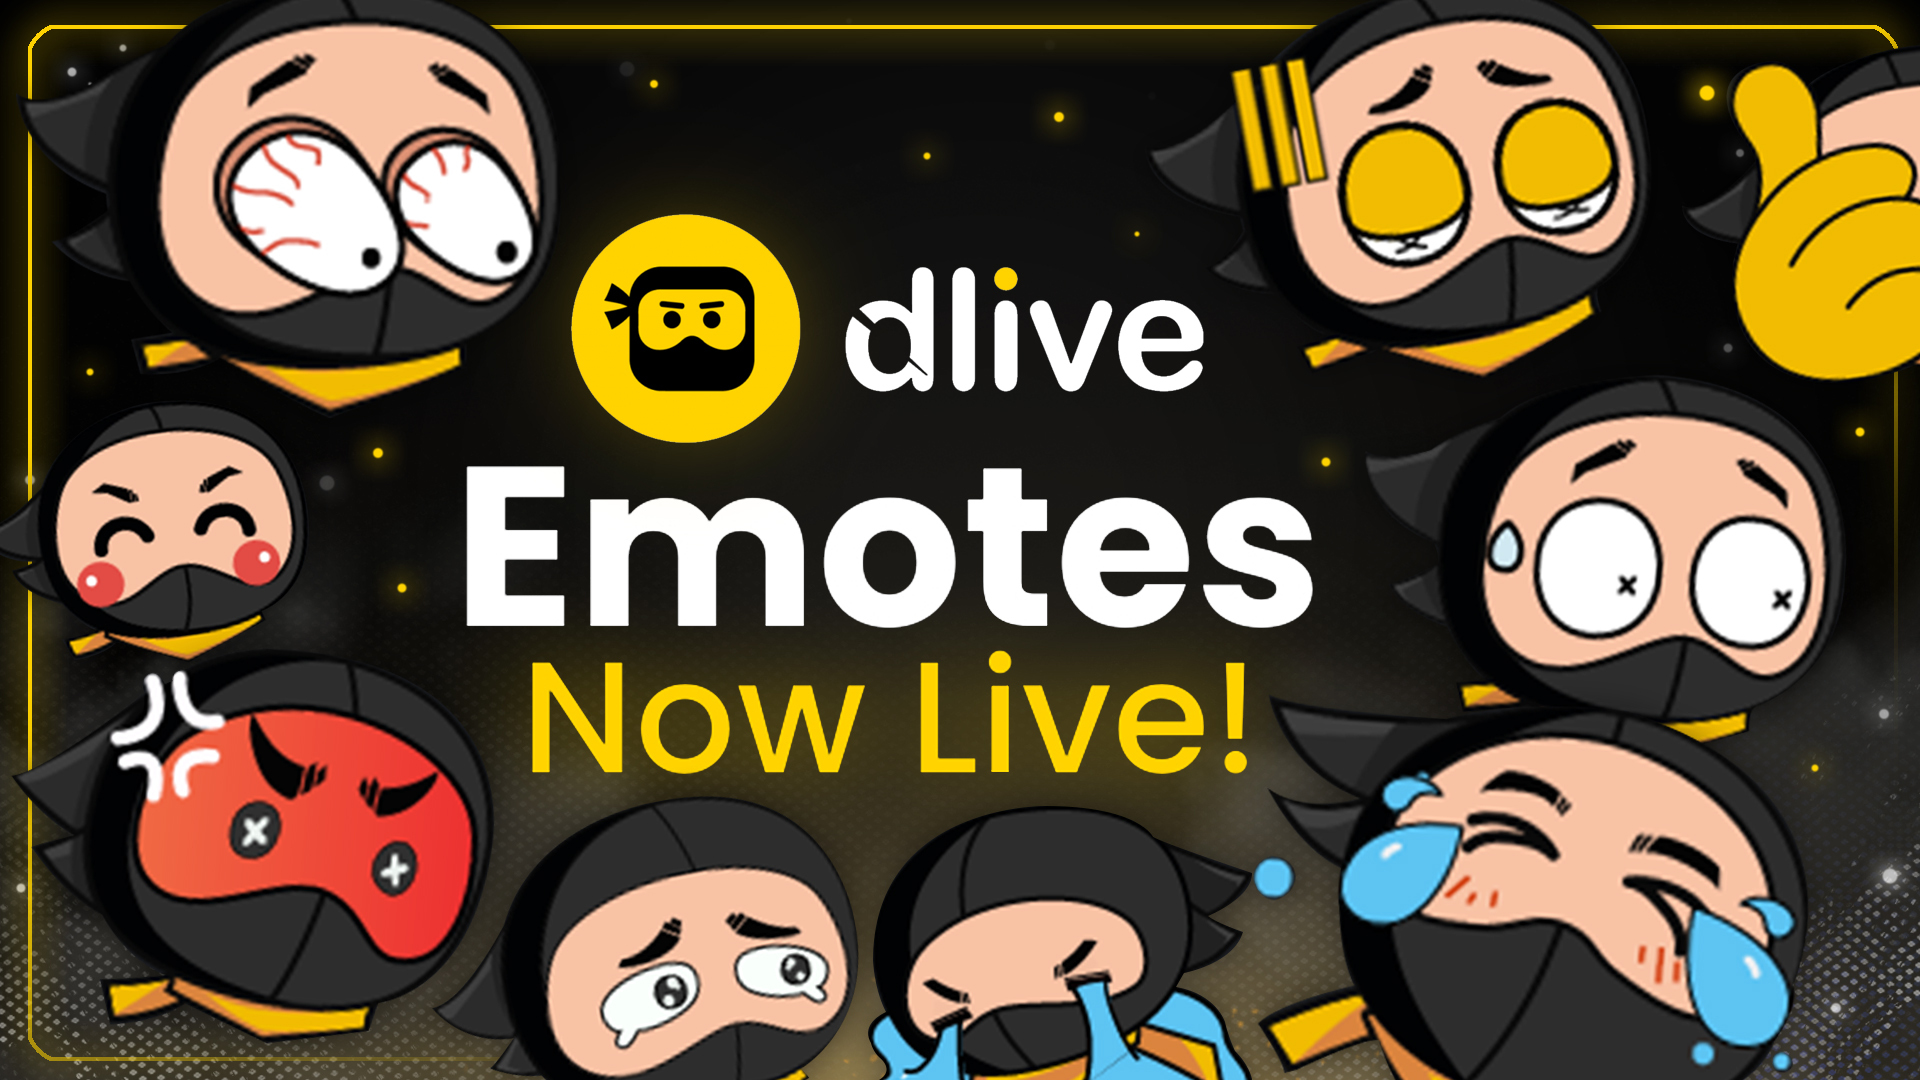 DLive new emote feature